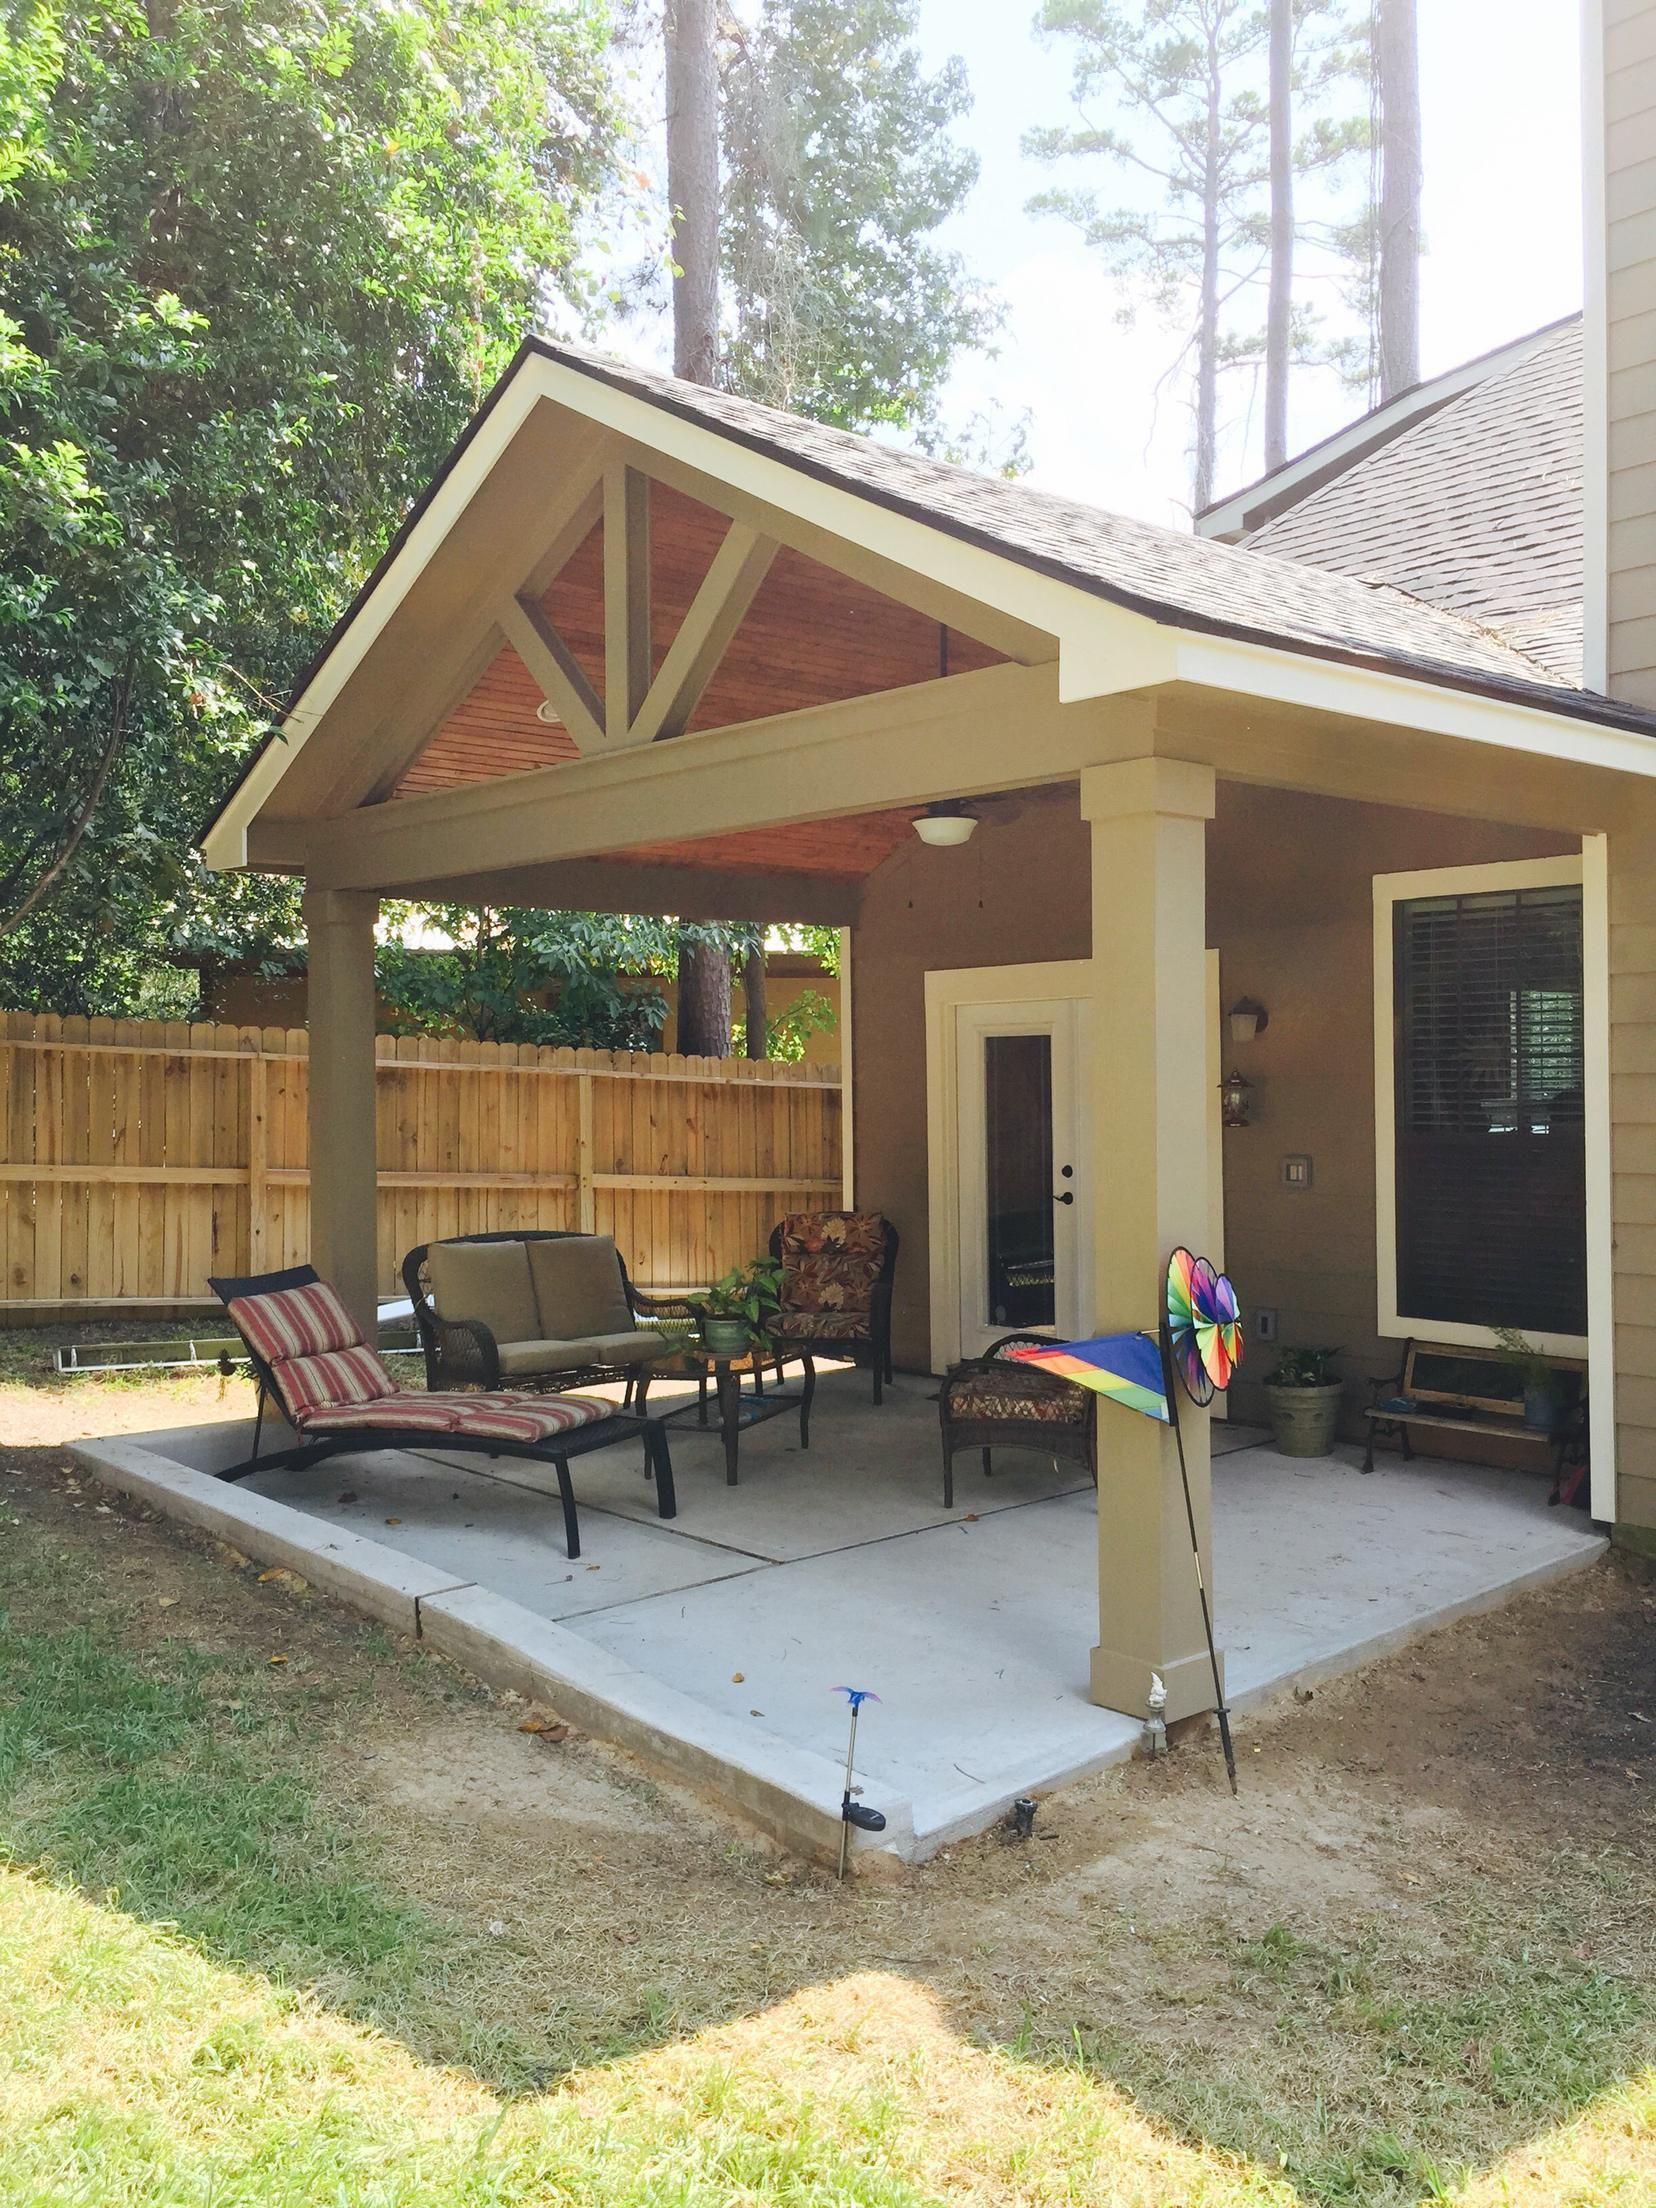 Backyard Porch Ideas On A Budget Patio Makeover Outdoor Spaces Coolest Gable Roof Patio Cover With Covered Patio Design Patio Makeover Backyard Covered Patios